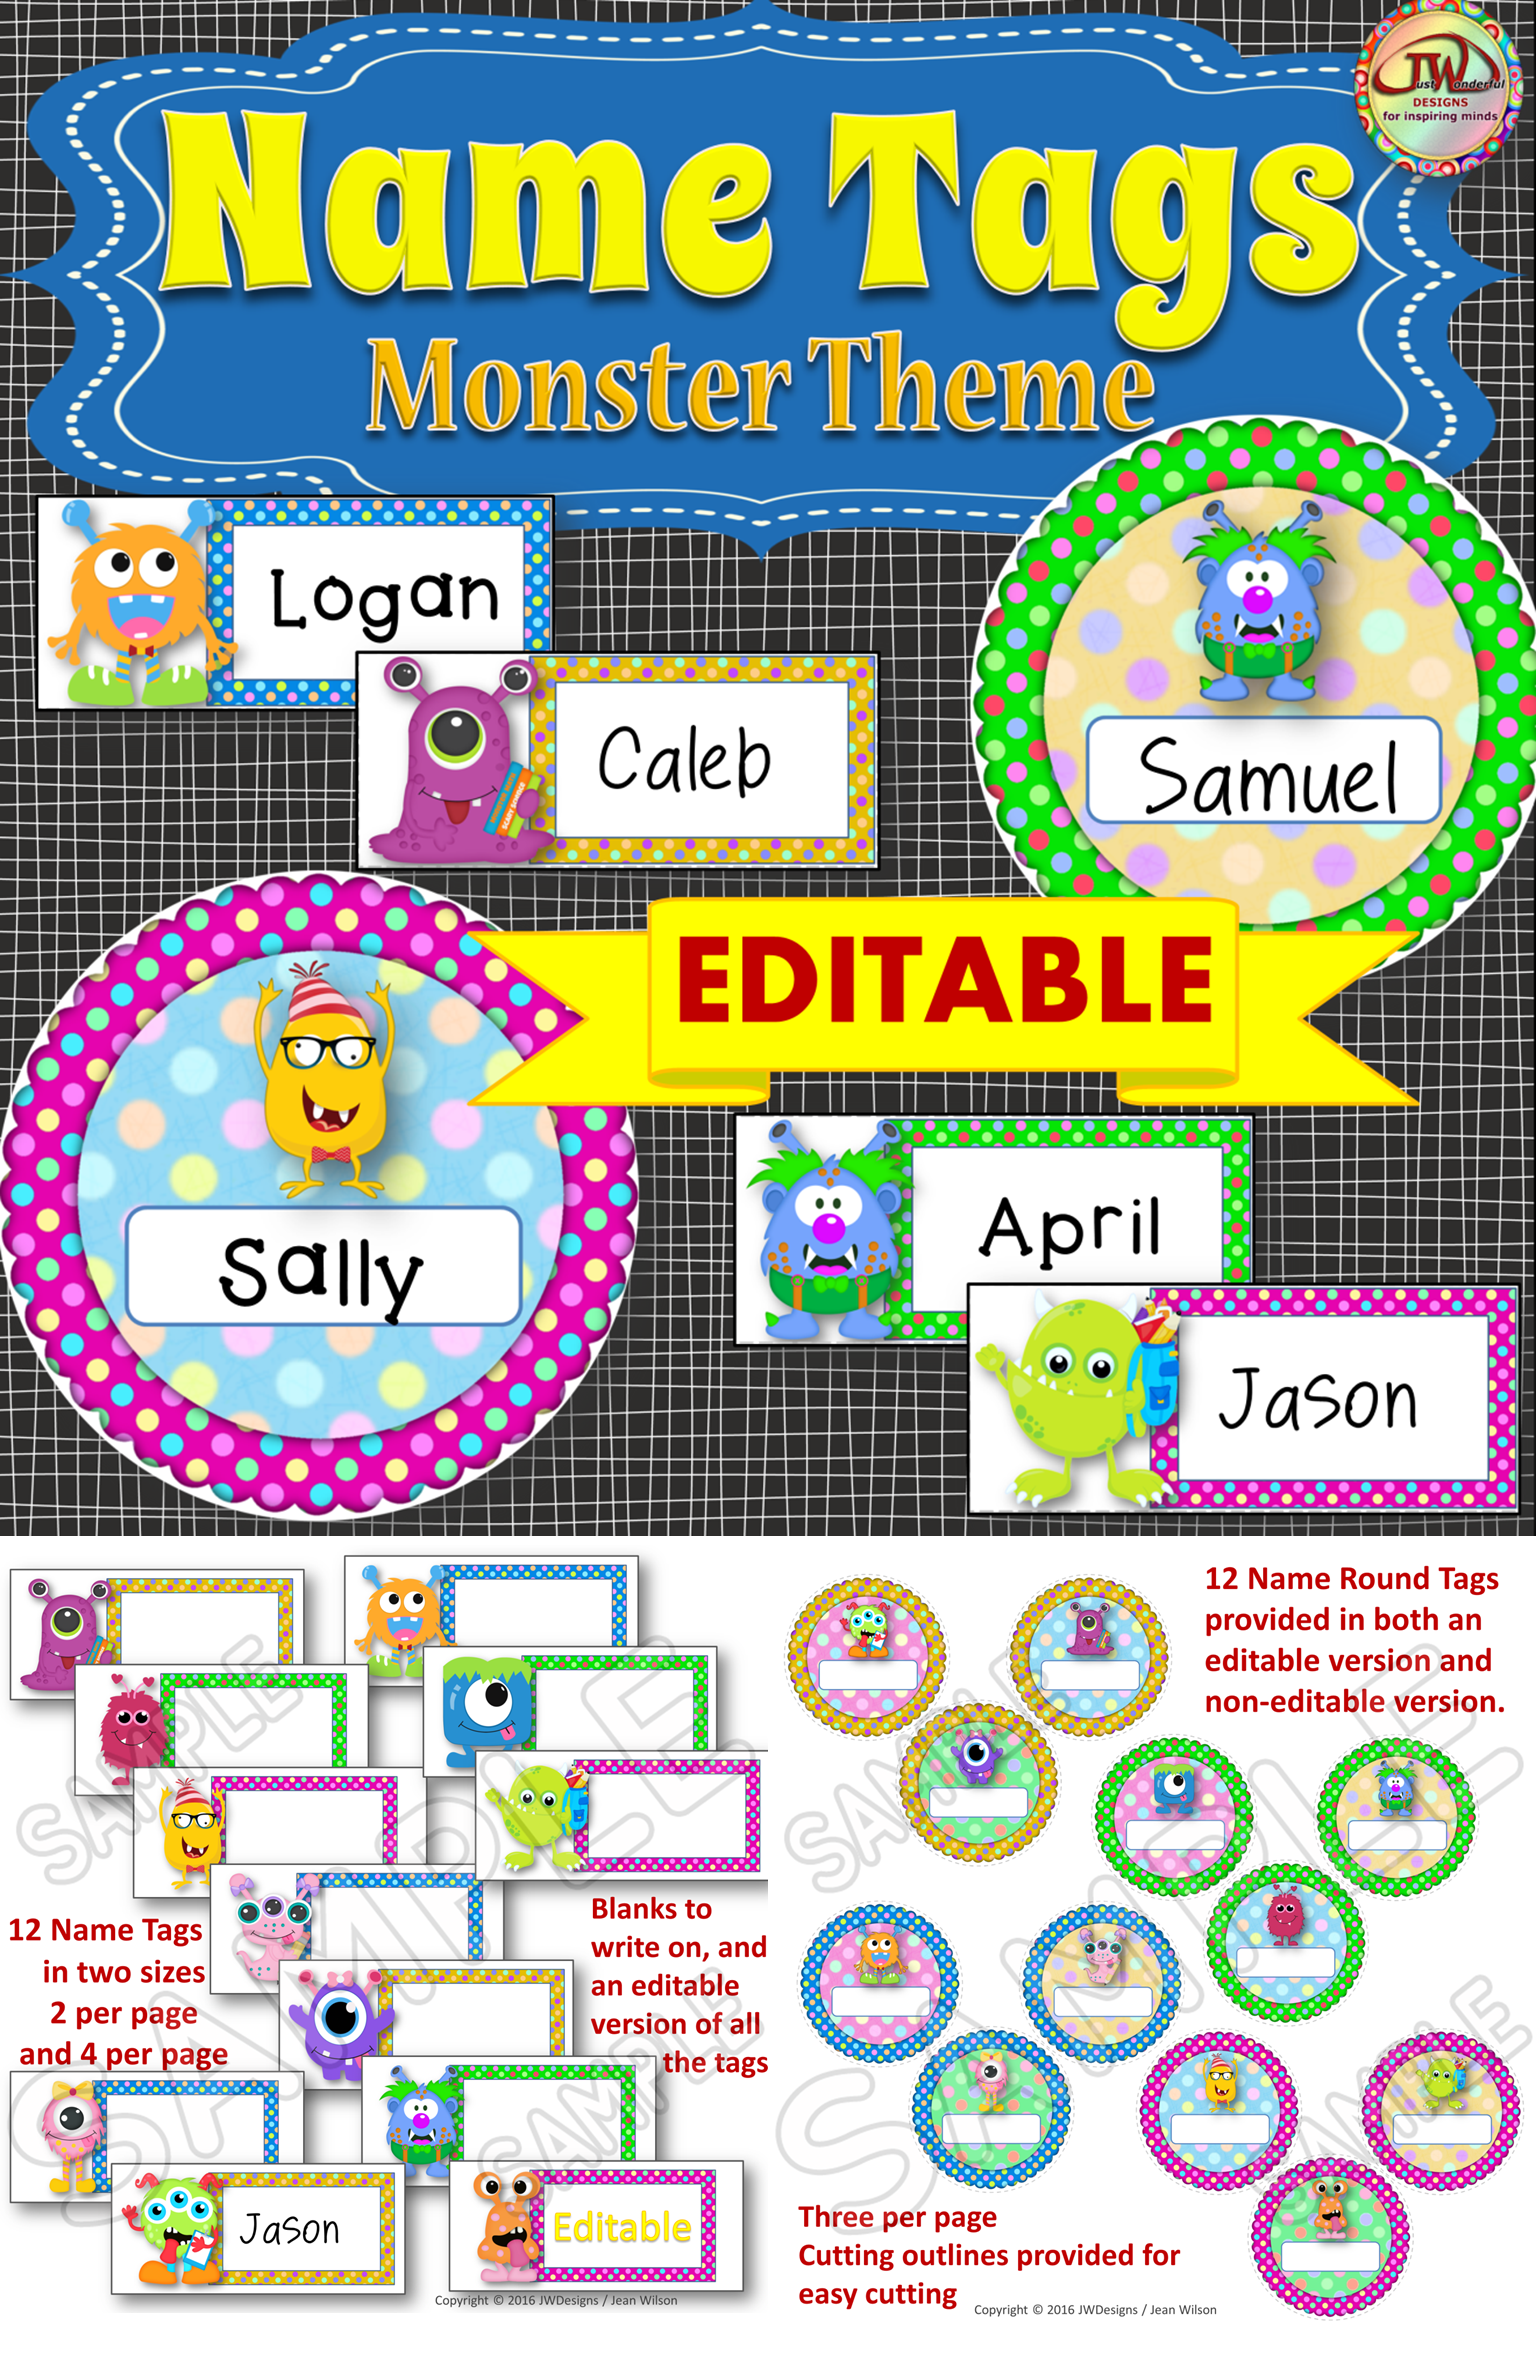 Editable Labels - MONSTER Themed Editable Name Tags